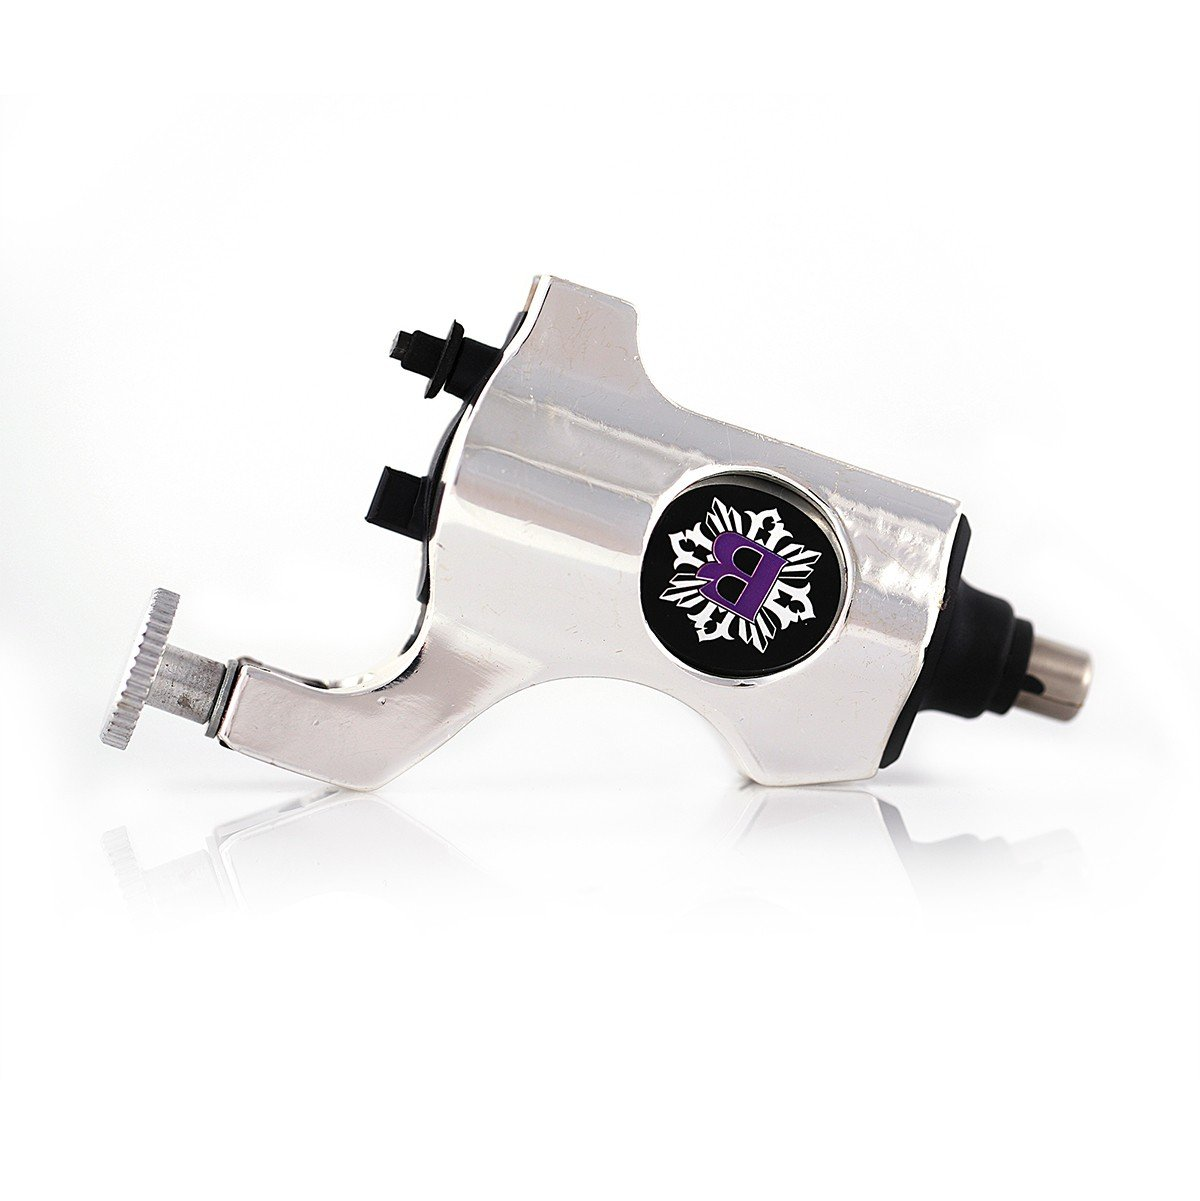 Ocoocoo A200 Protoceratops Tattoo Machine High Performance 5000-8000 R/Minute